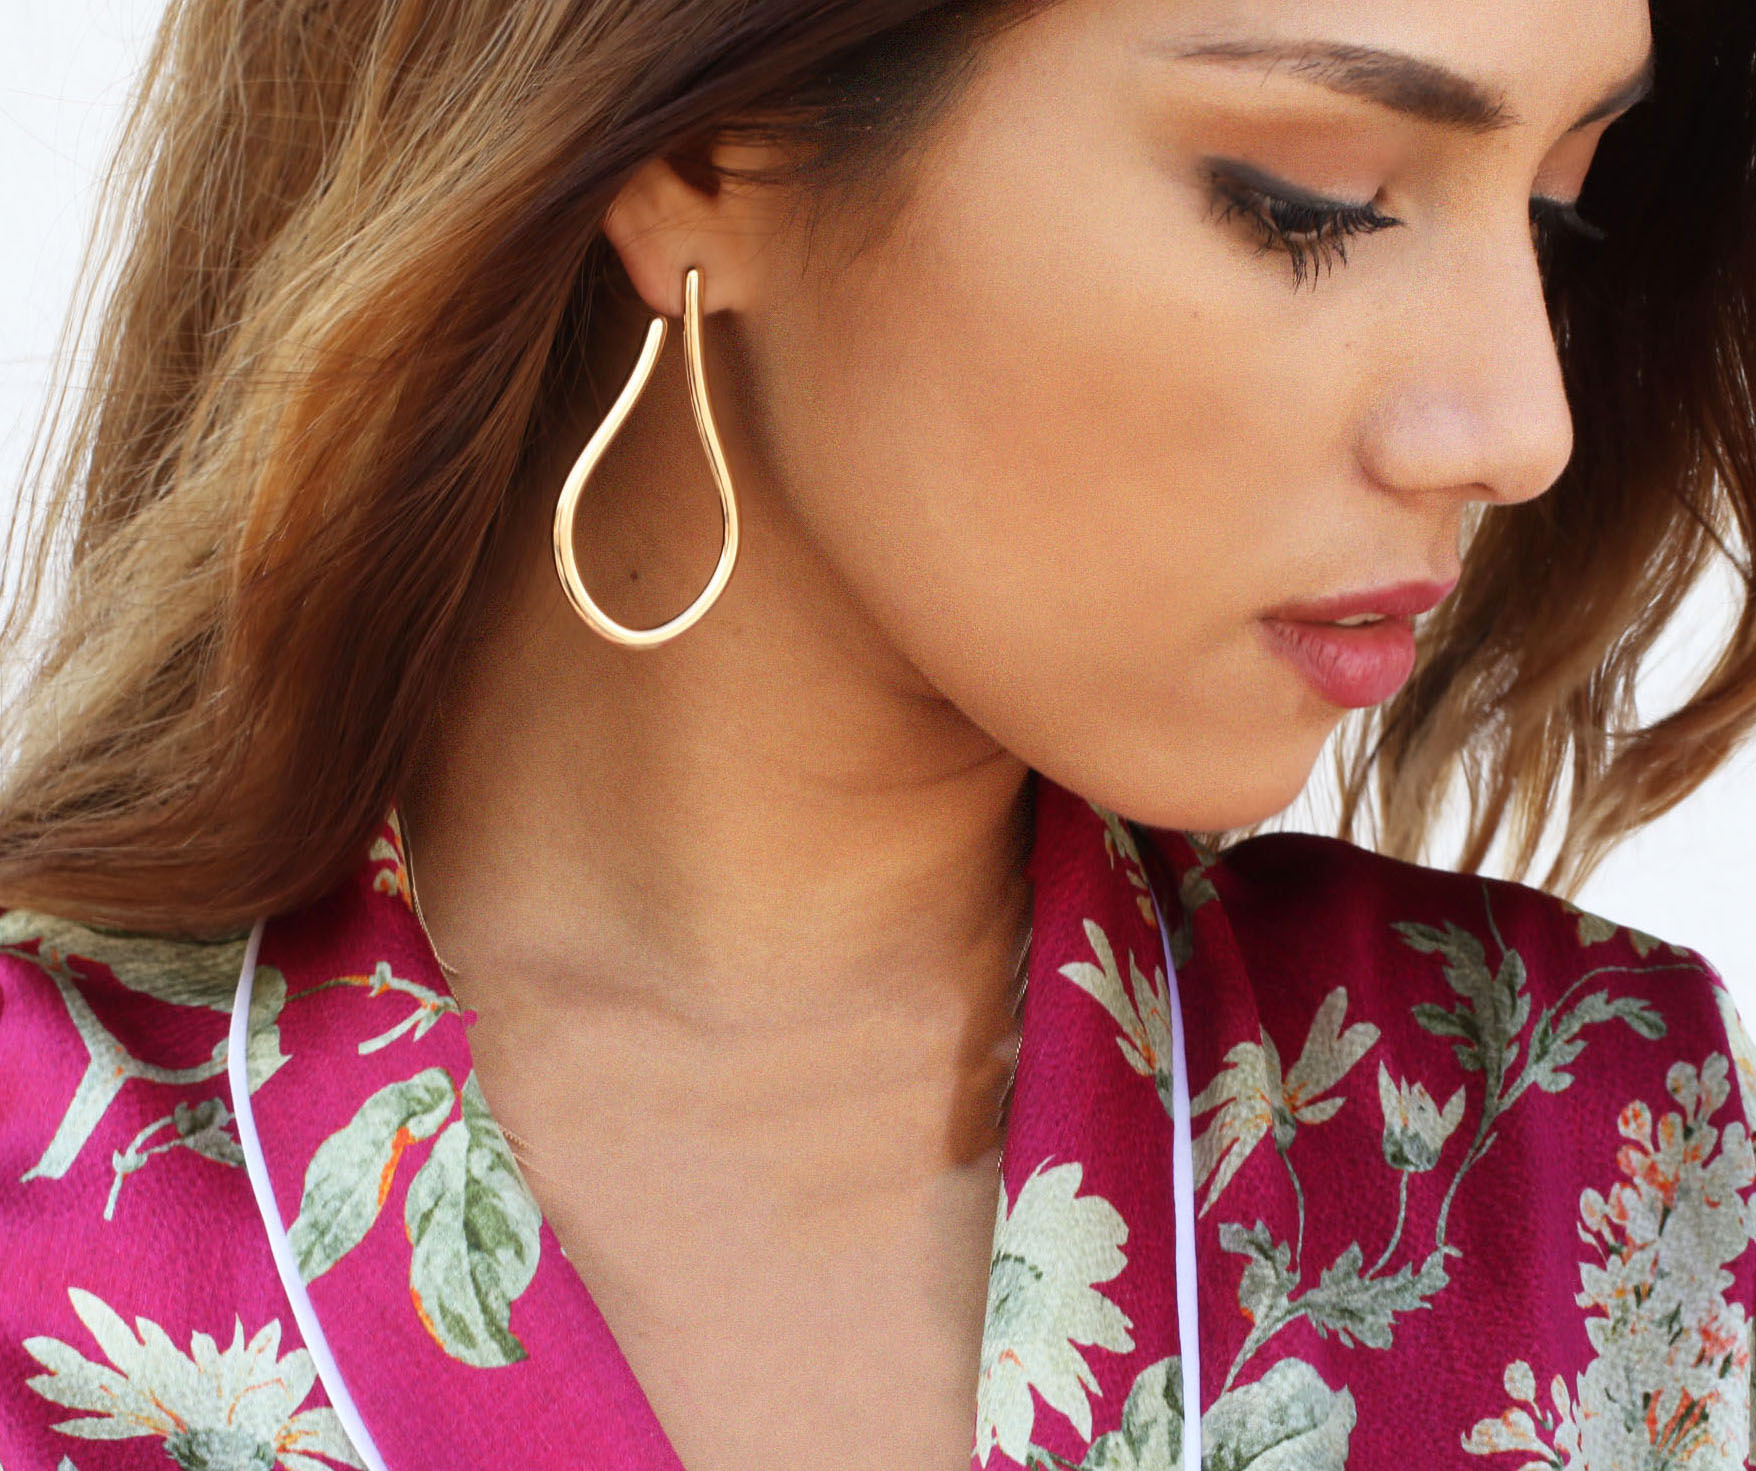 SHOULDER-GRAZING STATEMENT EARRINGS